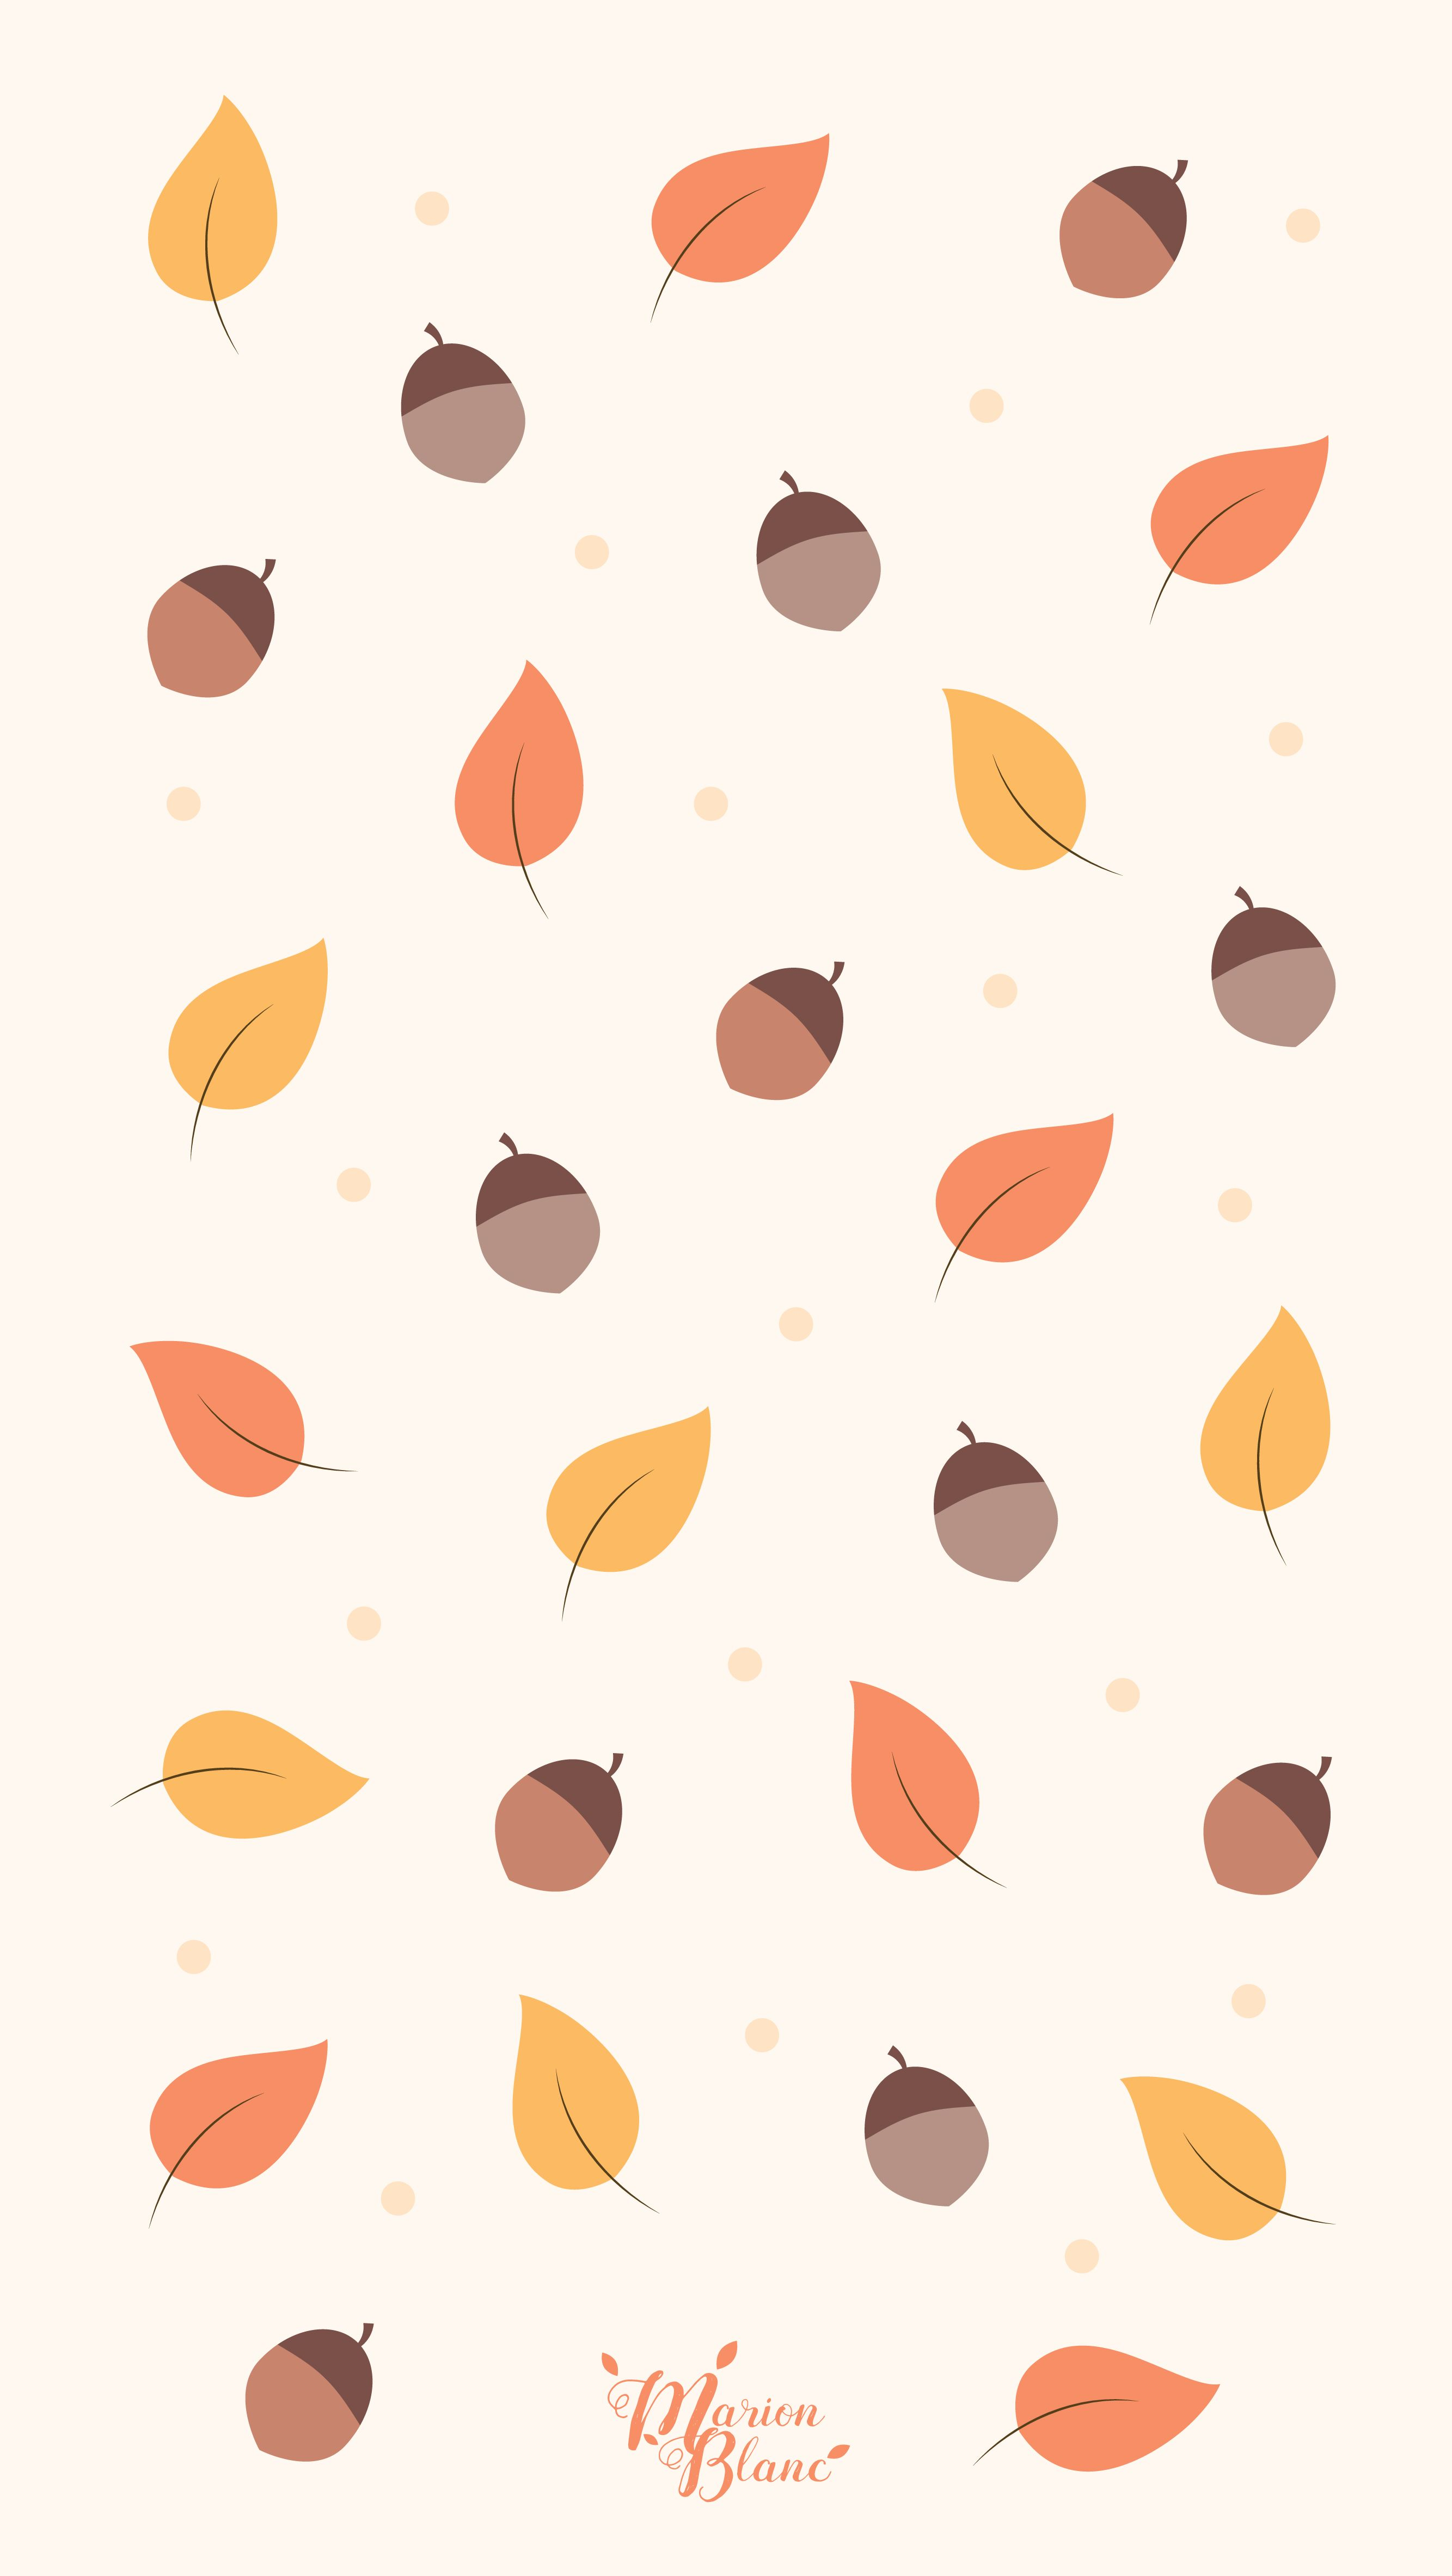 Autumn Marion Blanc Cute Wallpaper For Phone Tumblr Iphone Wallpaper Iphone Wallpaper